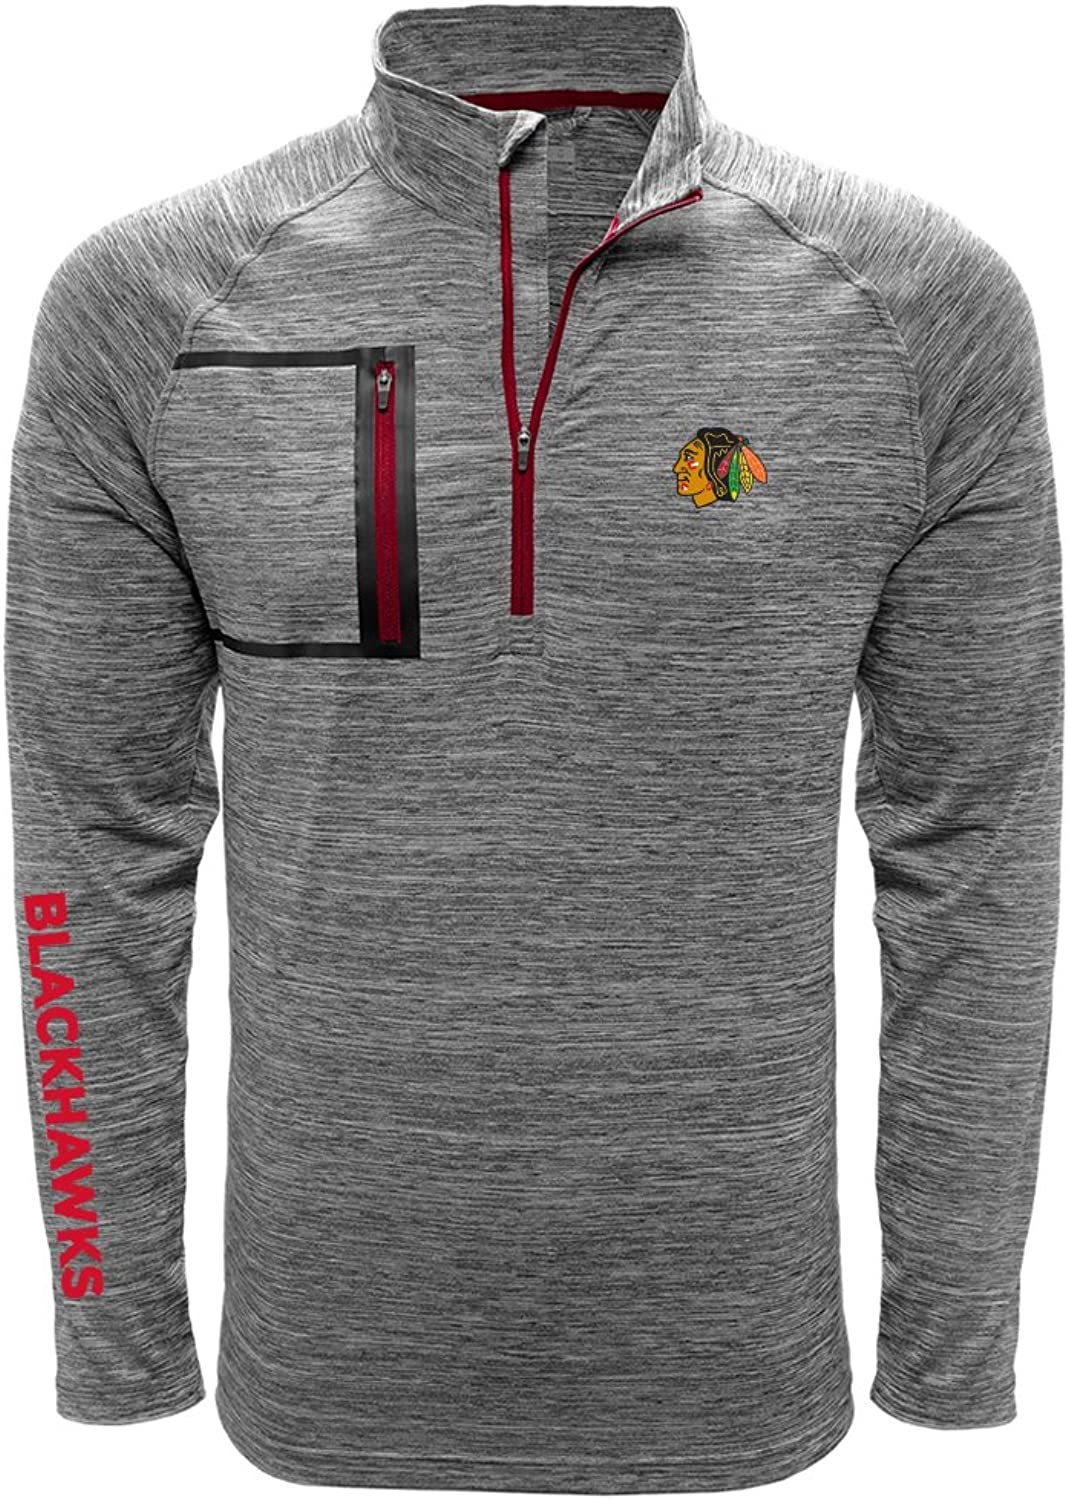 Levelwear LEY9R Men's Vault Wordmark Quarter Zip Mid-Layer Heather Charcoal Flame Red, X-Large